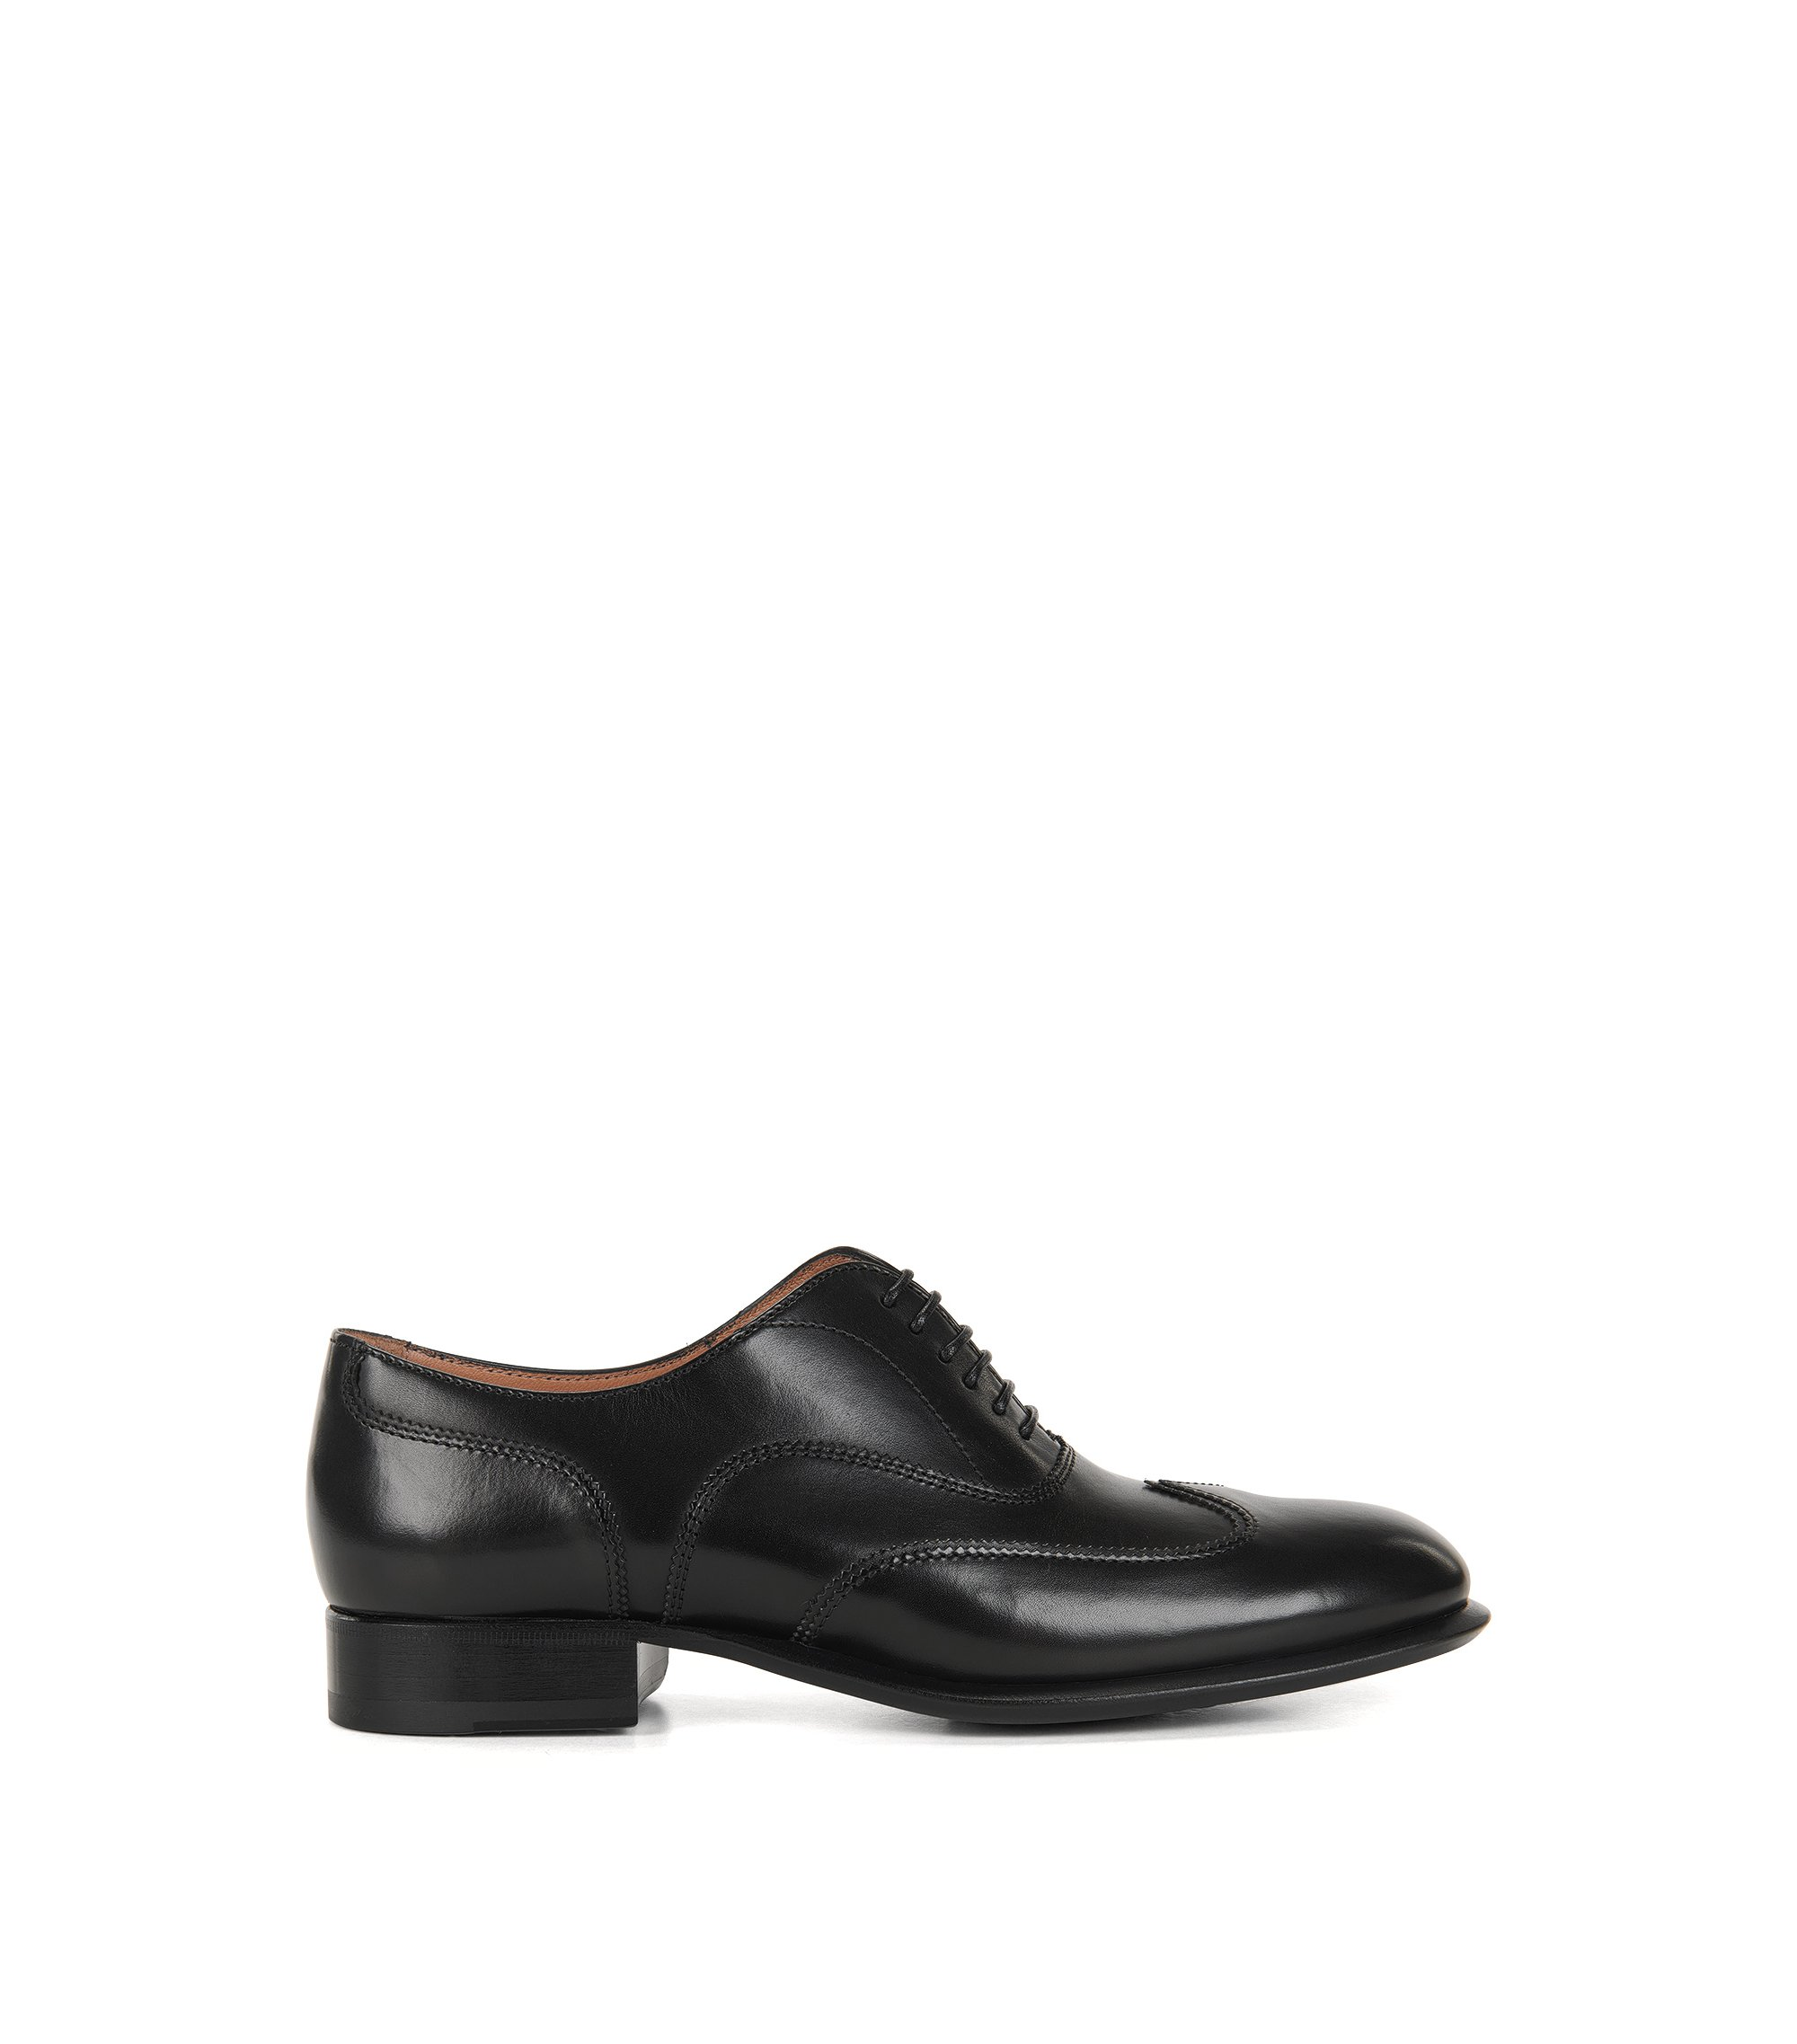 Lace-up leather formal shoes, Black